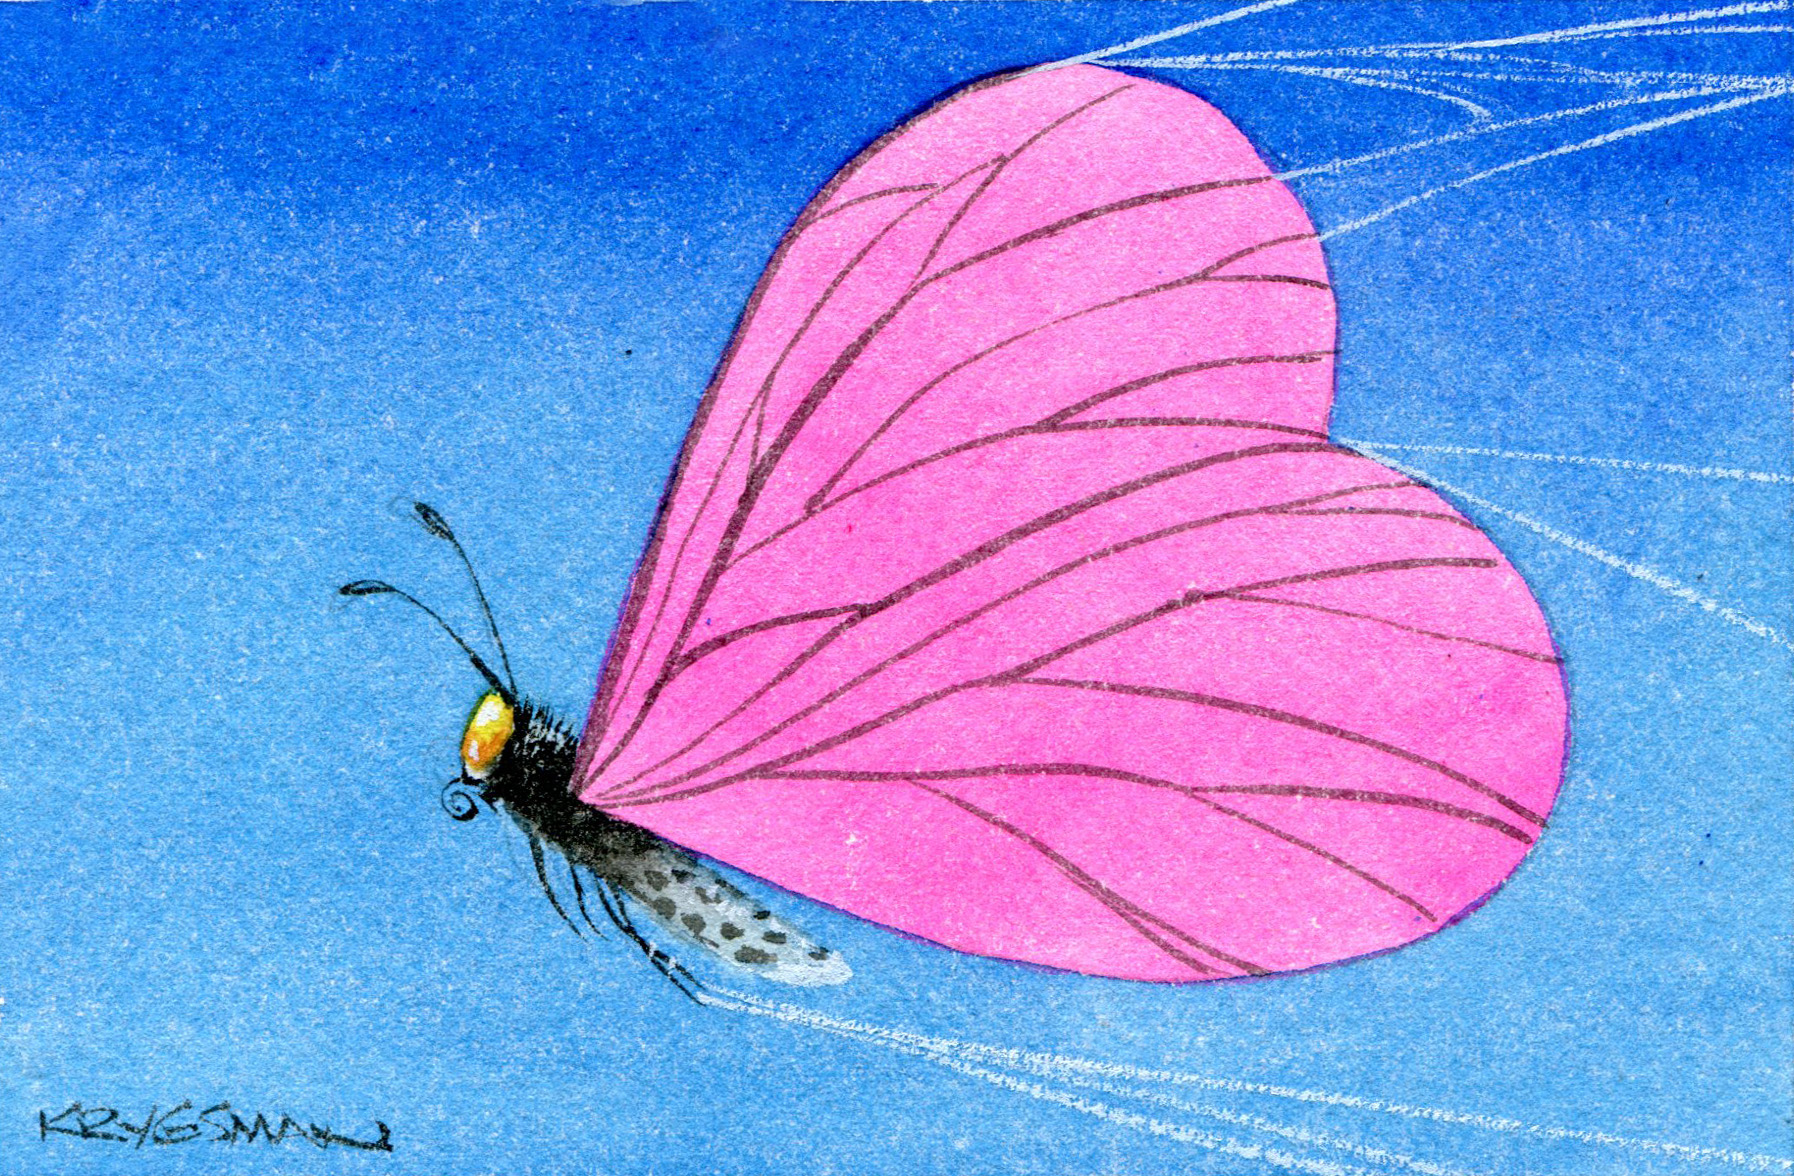 OZ Life- Ostrow col. Butterfly with heart shaped wings breaking spider web. Artwork by Sturt Krygsman.